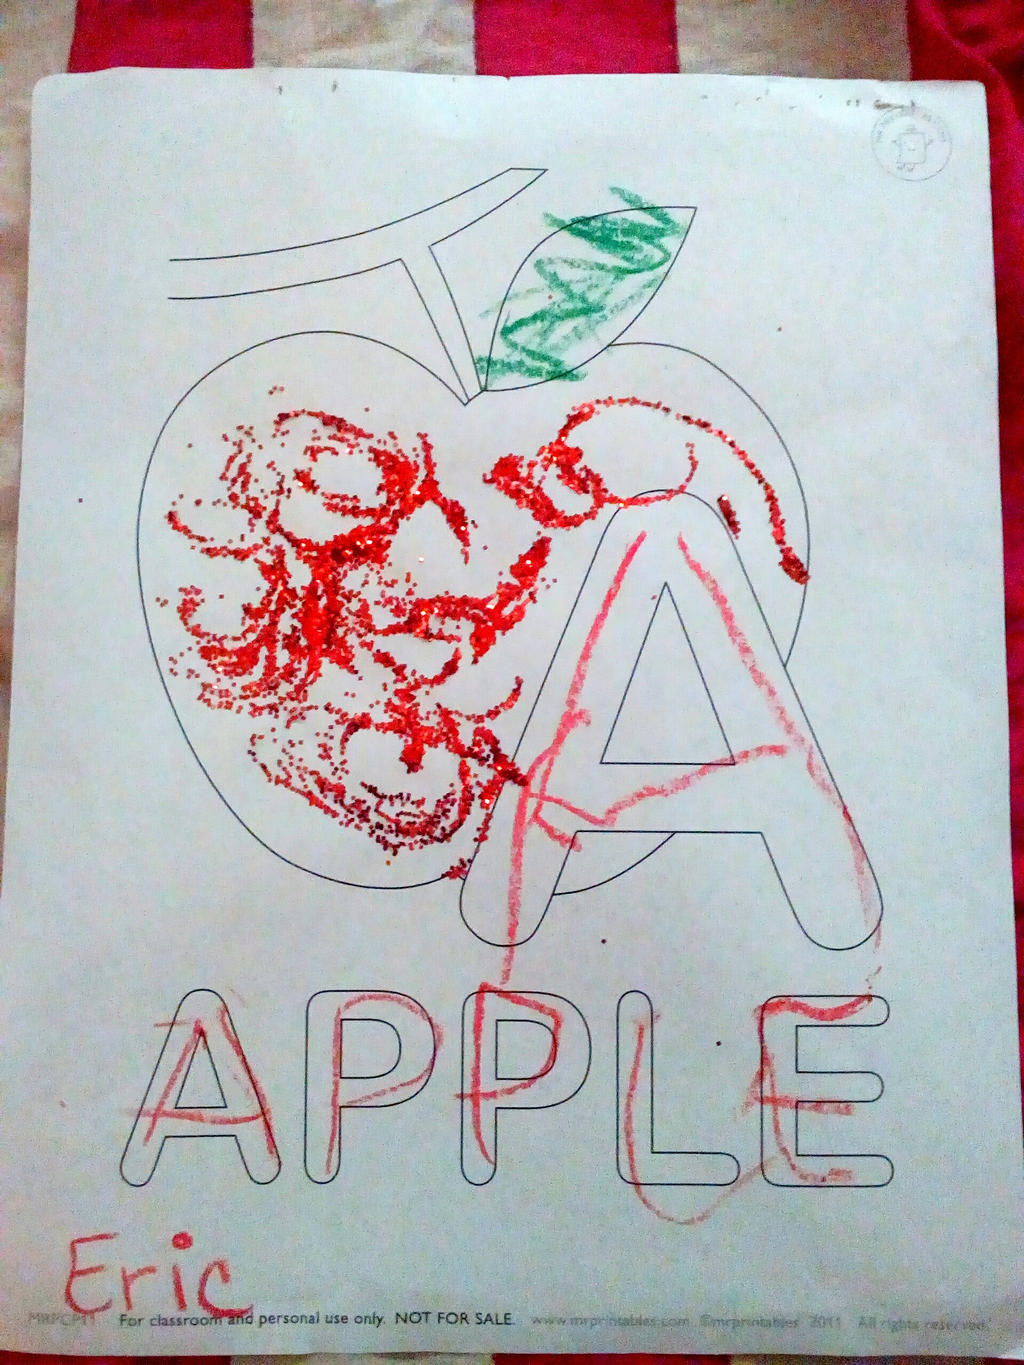 A is for Apple by Eric by Ellecia